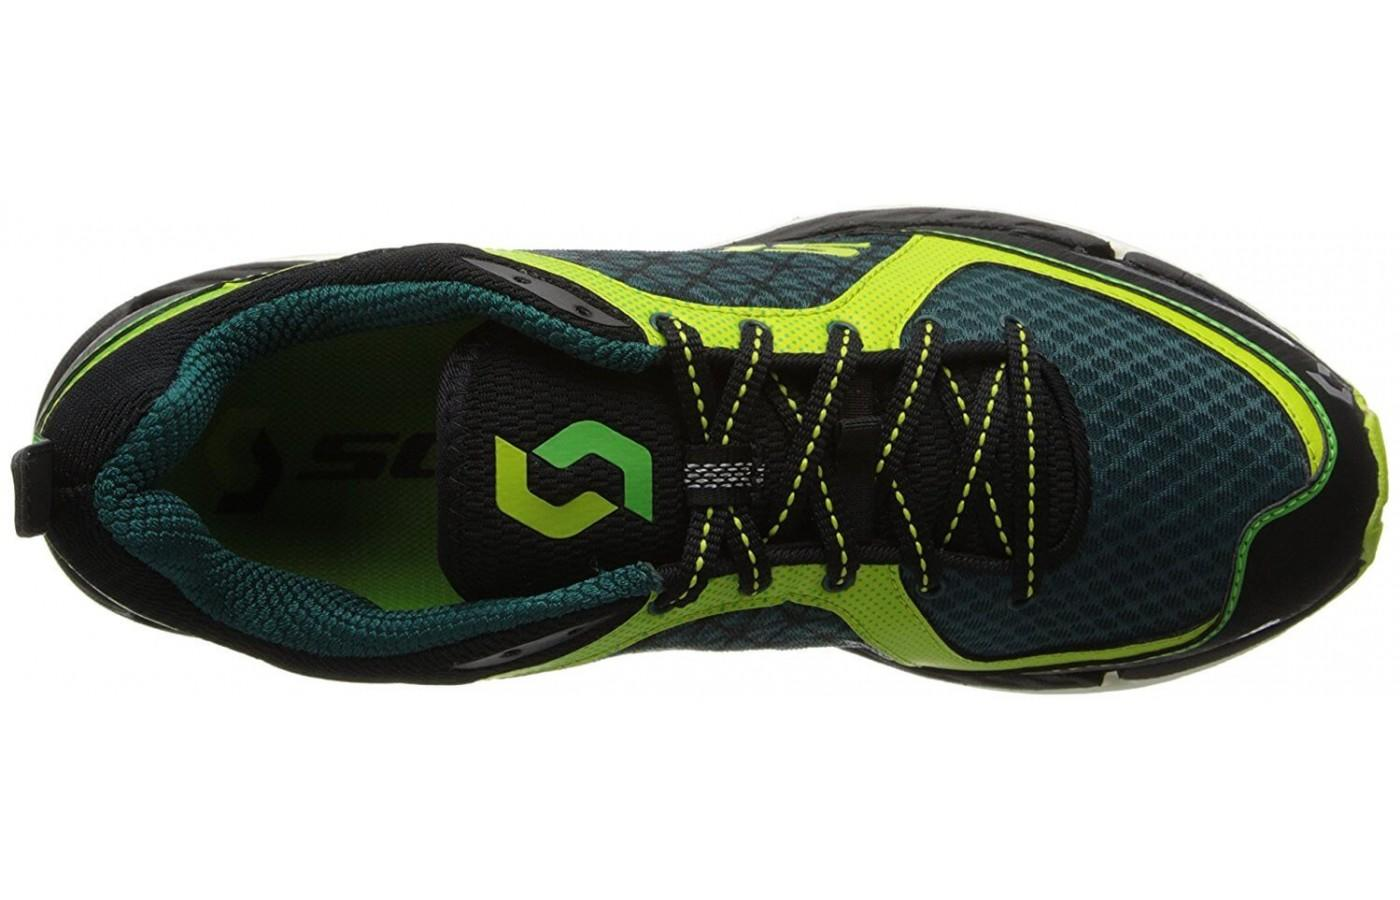 Scott T2 Kinabalu waterproof upper